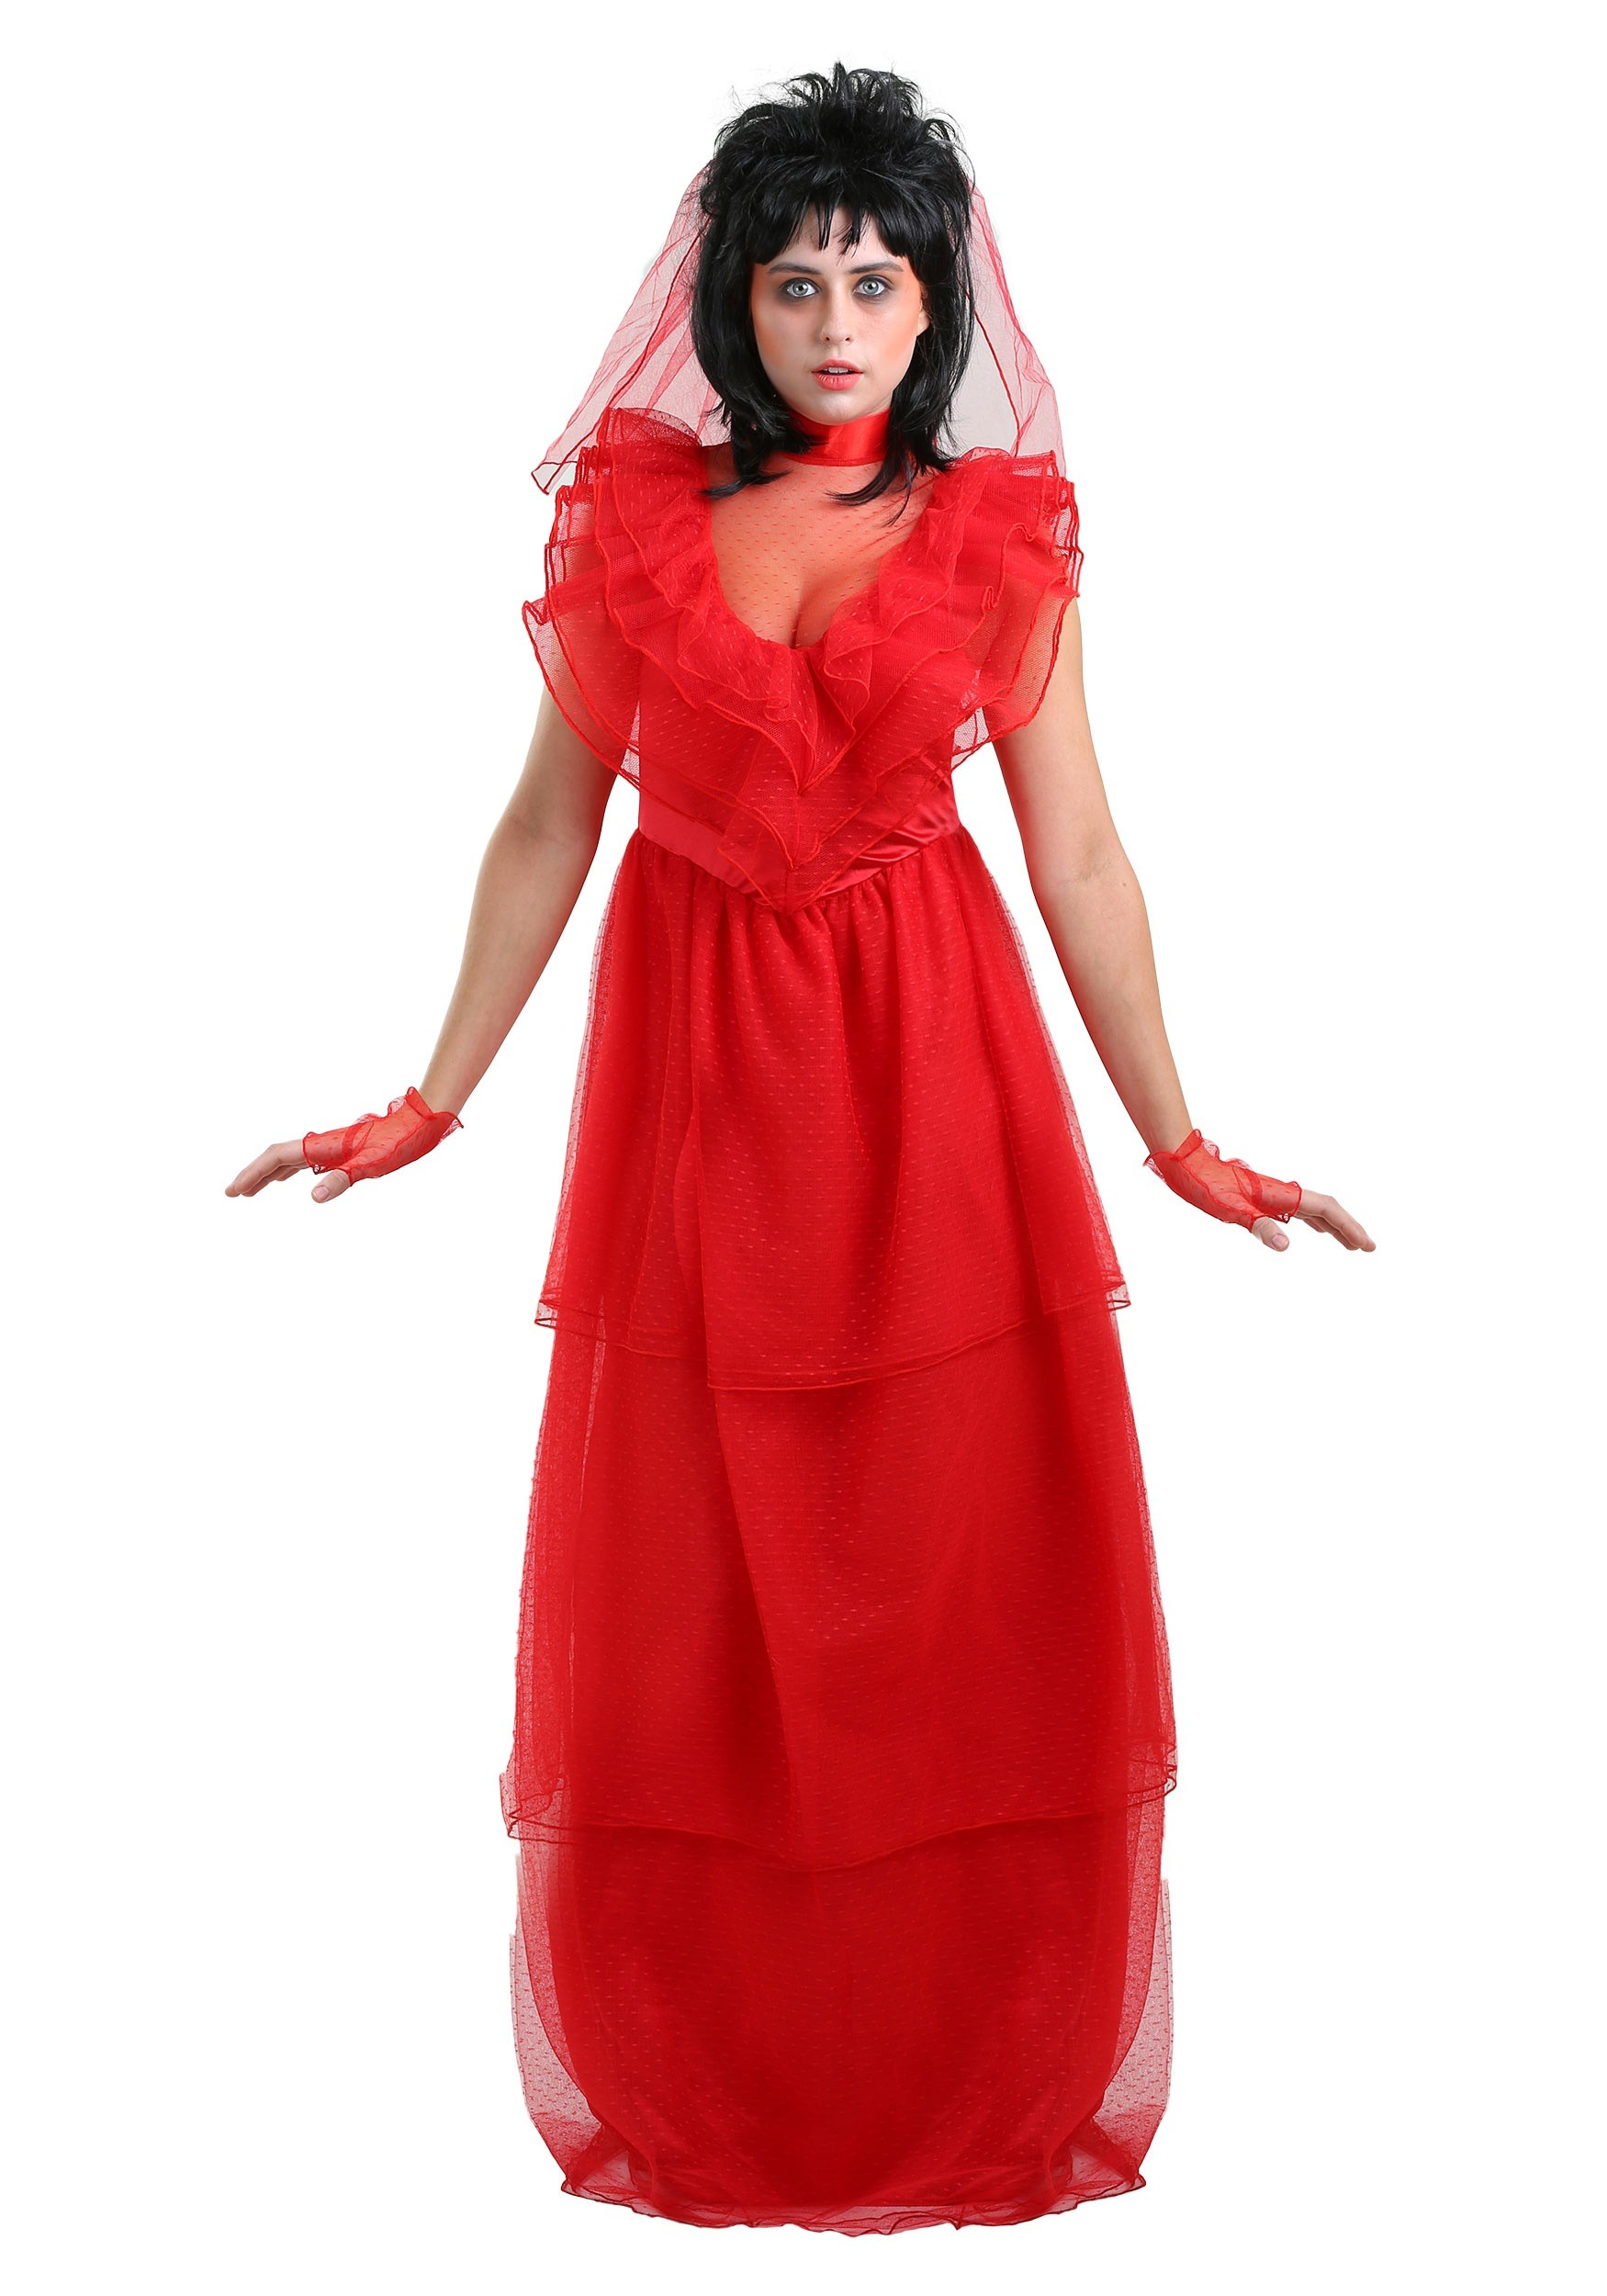 Red Gothic Wedding Dress For Women